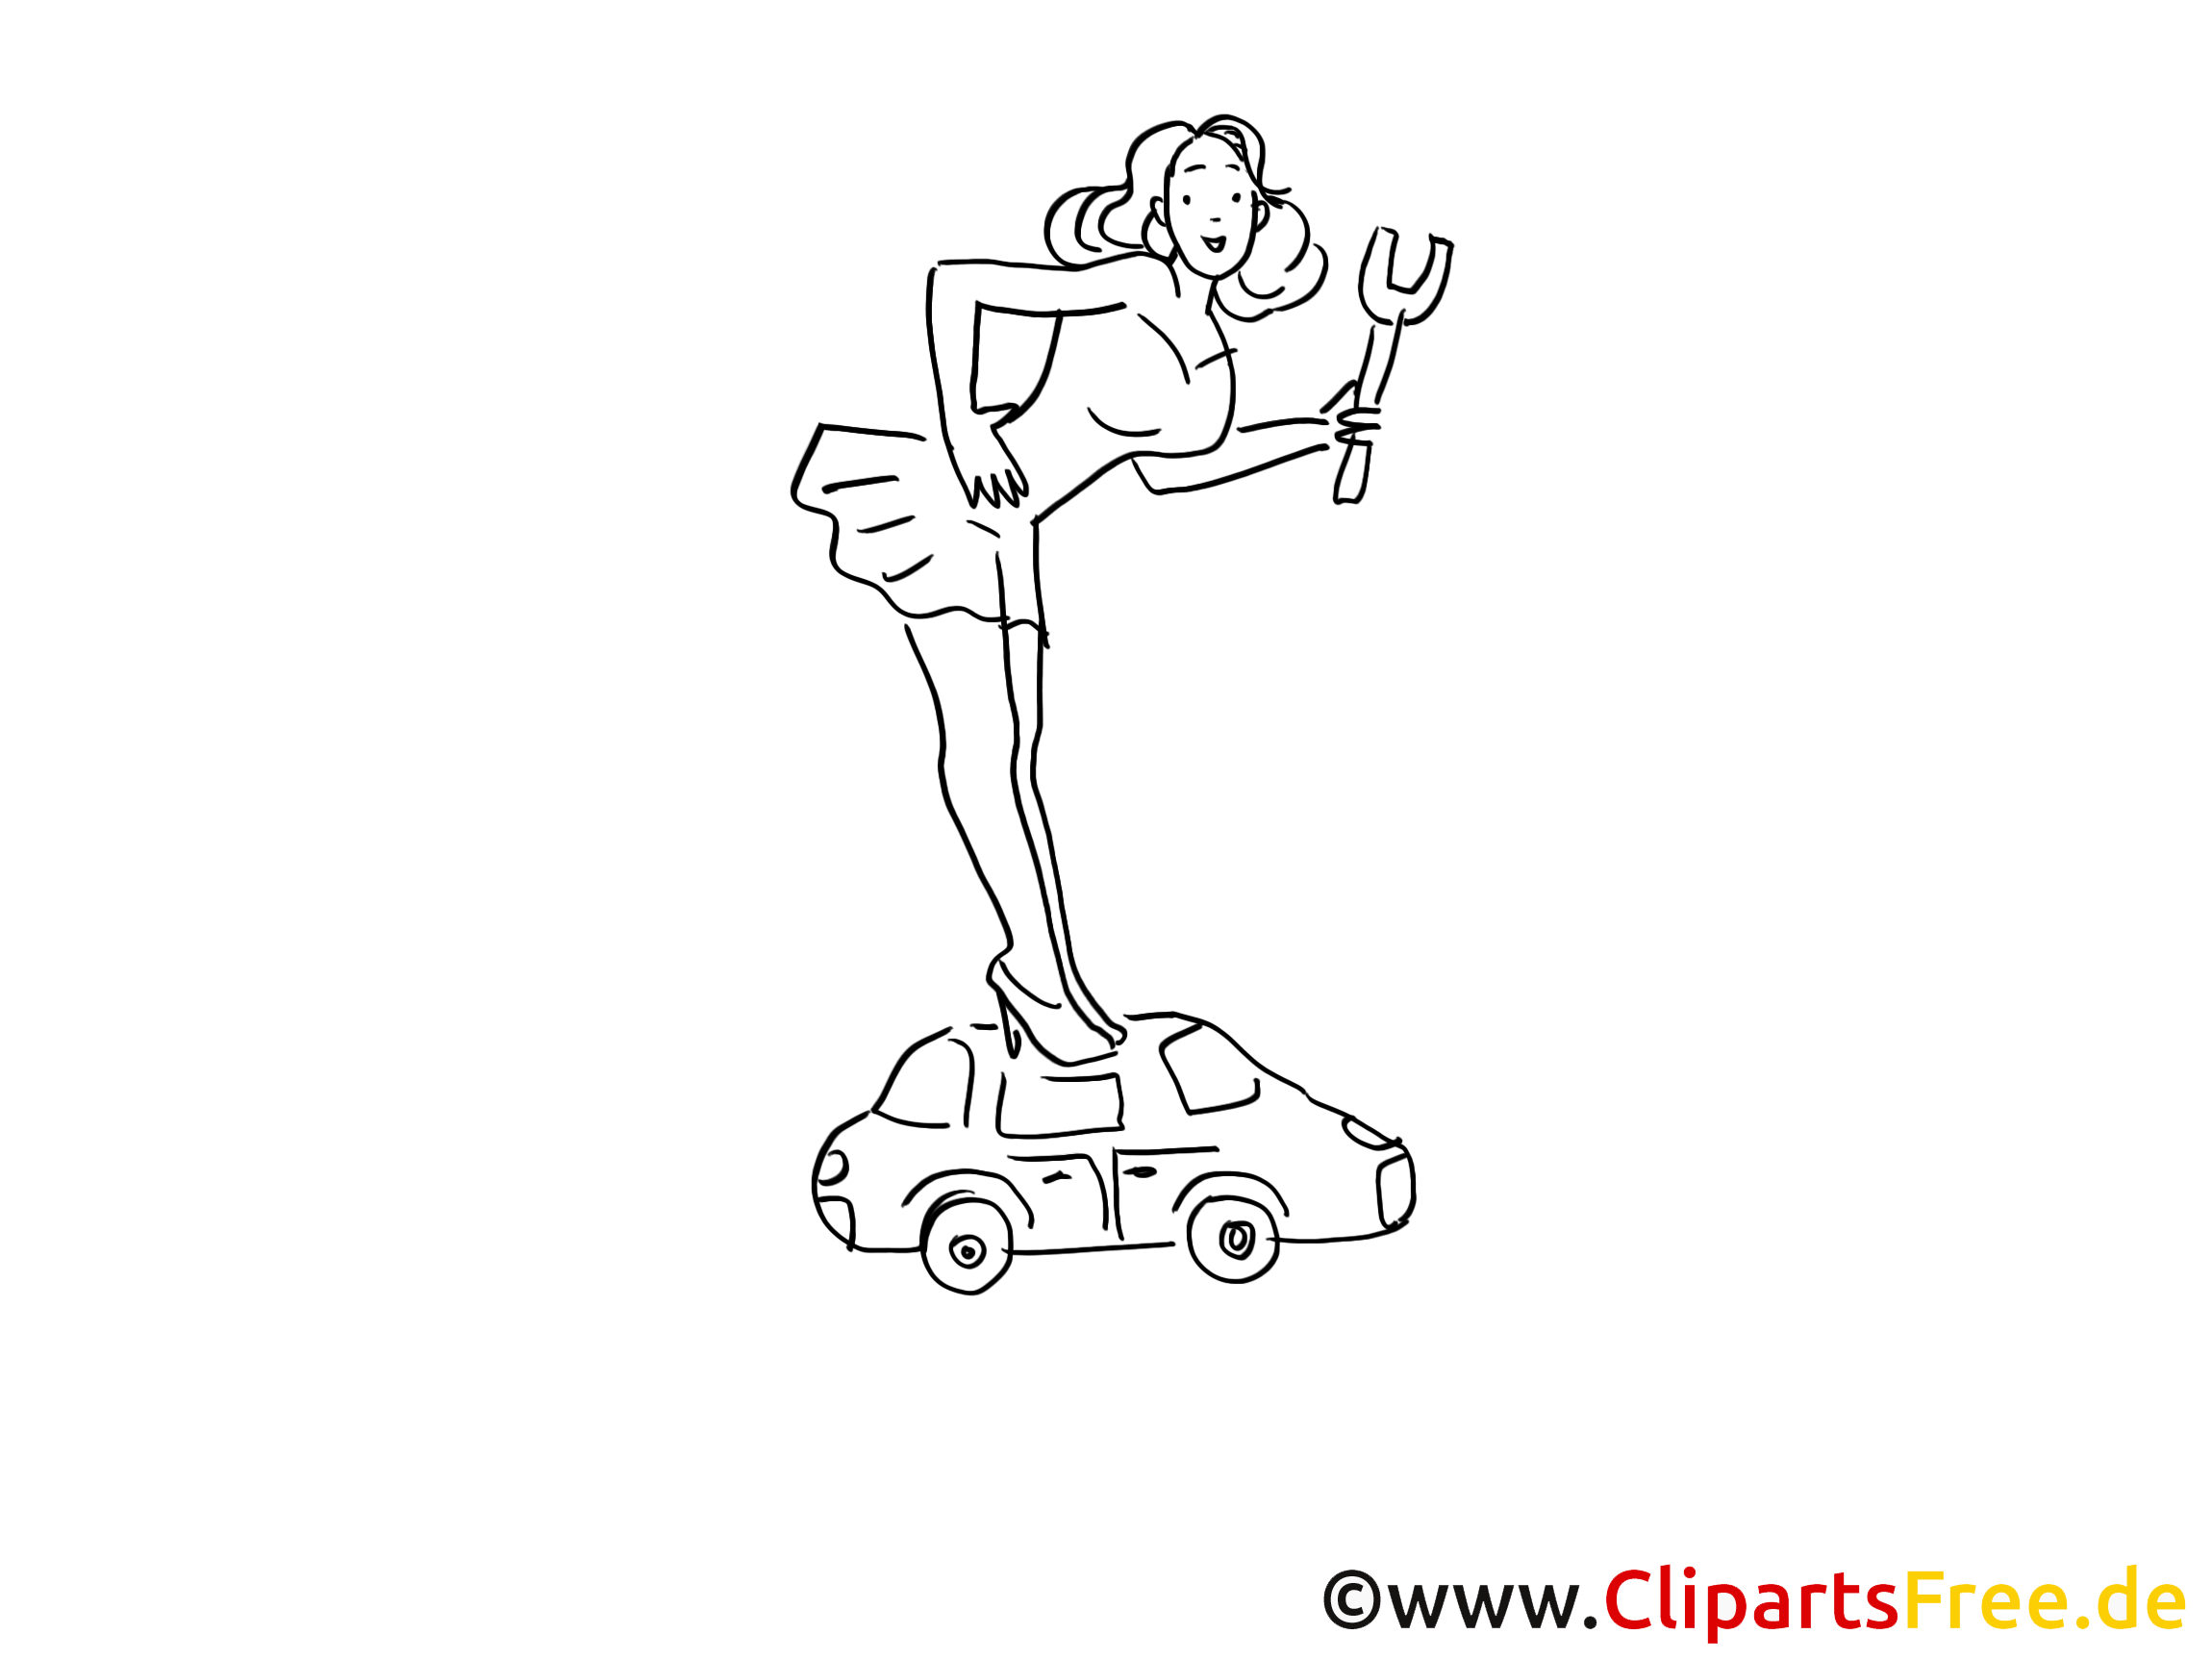 Miss tuning clip art black and white, graphic, pic, comic free